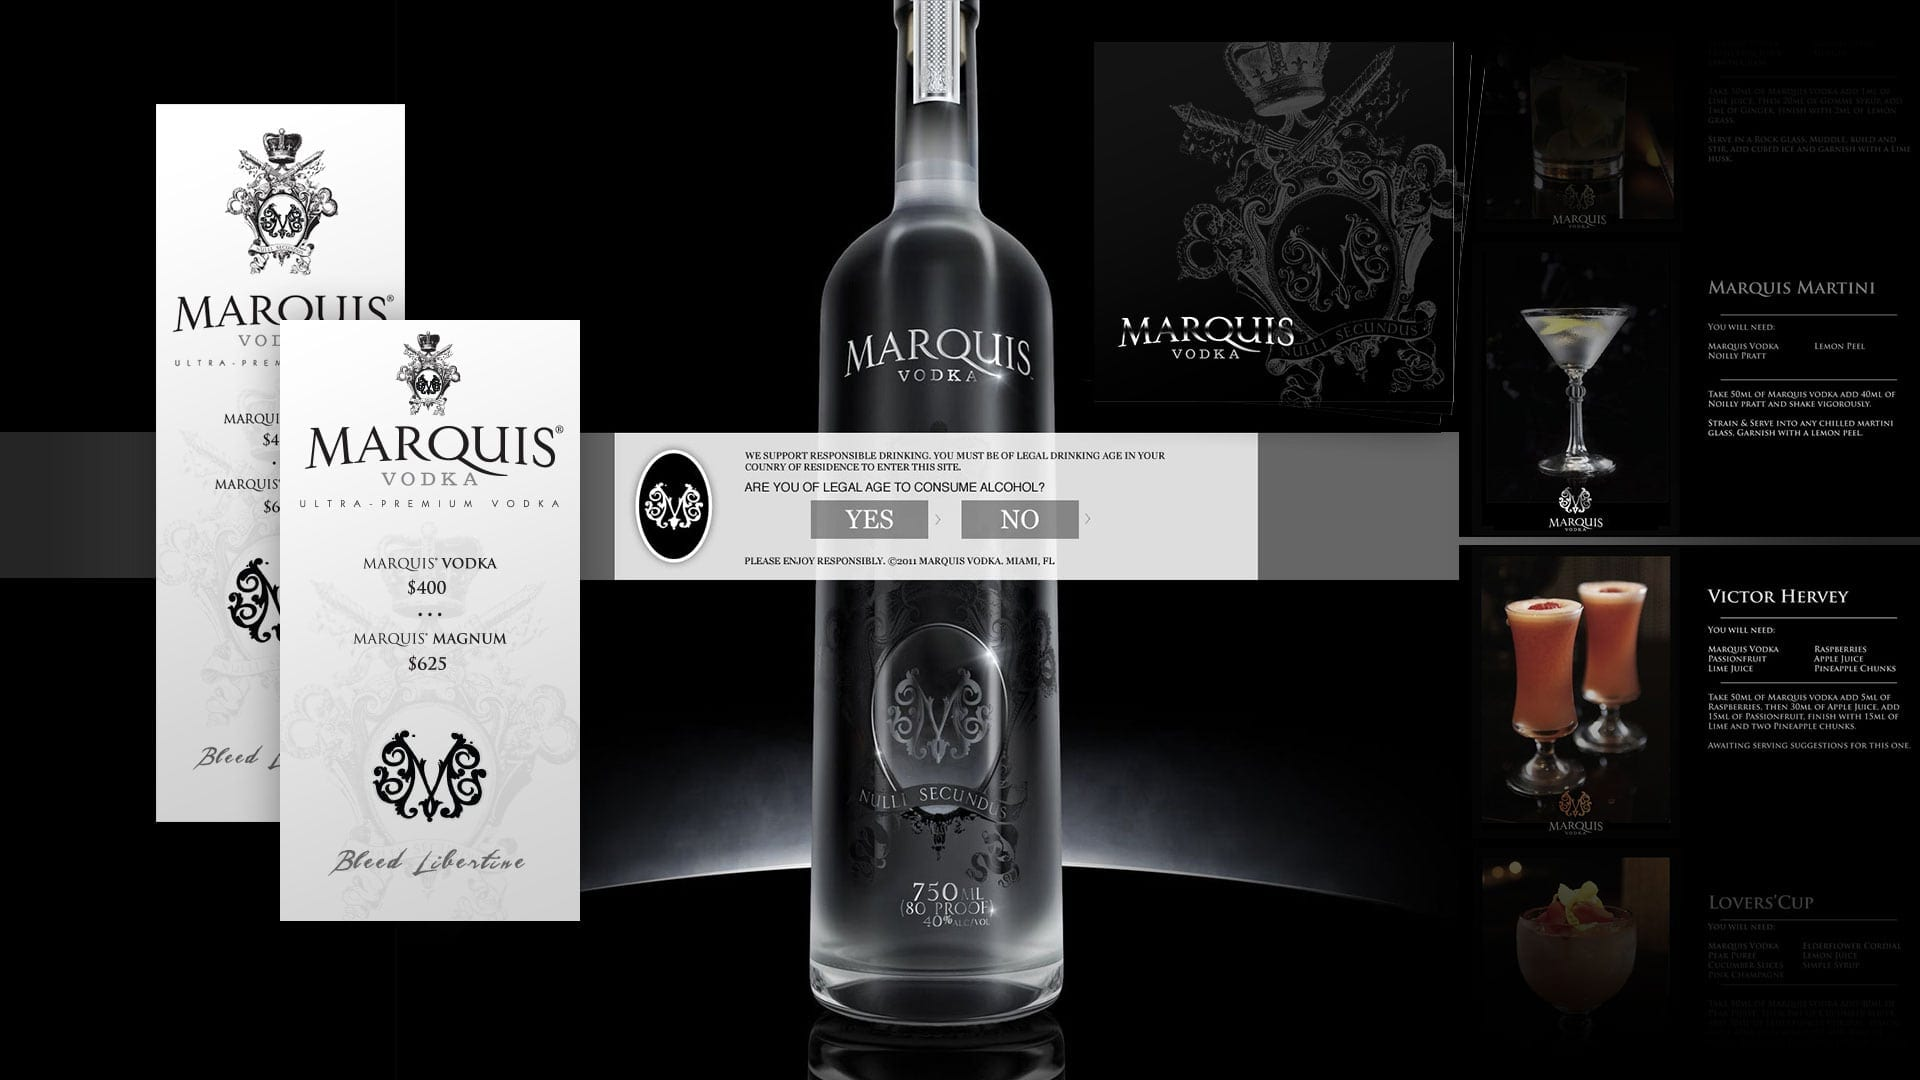 Marquis Vodka Asset Beverage Branding Design - Website, Bottle Sticker and Marketing assets - sliStudios - Miami